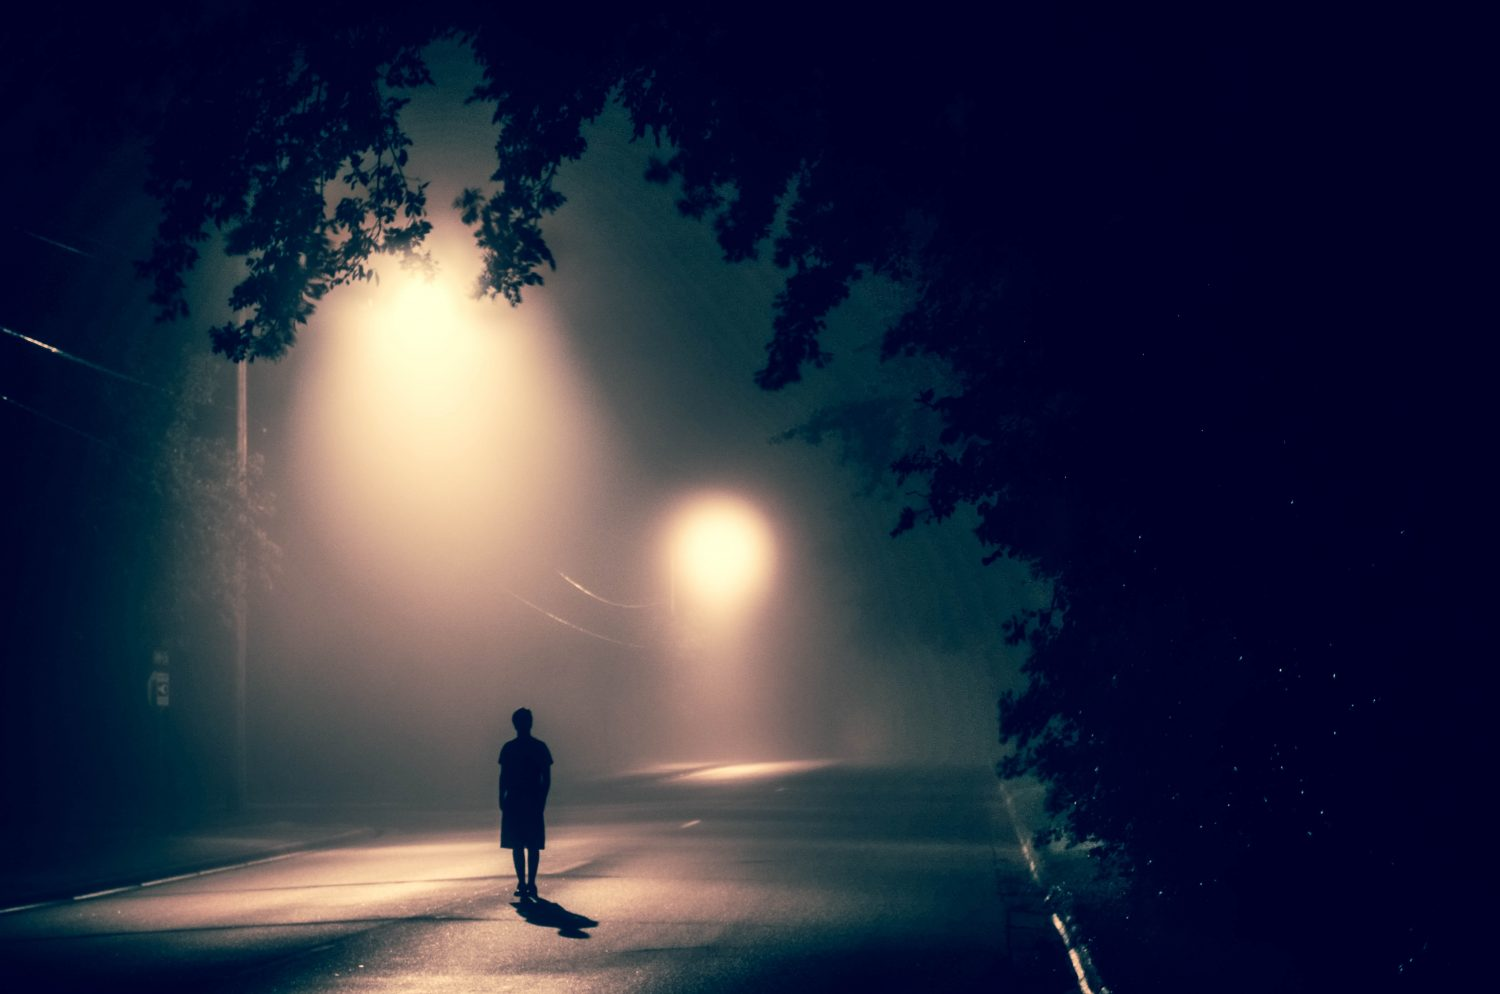 loneliness: what can you do to manage your loneliness?